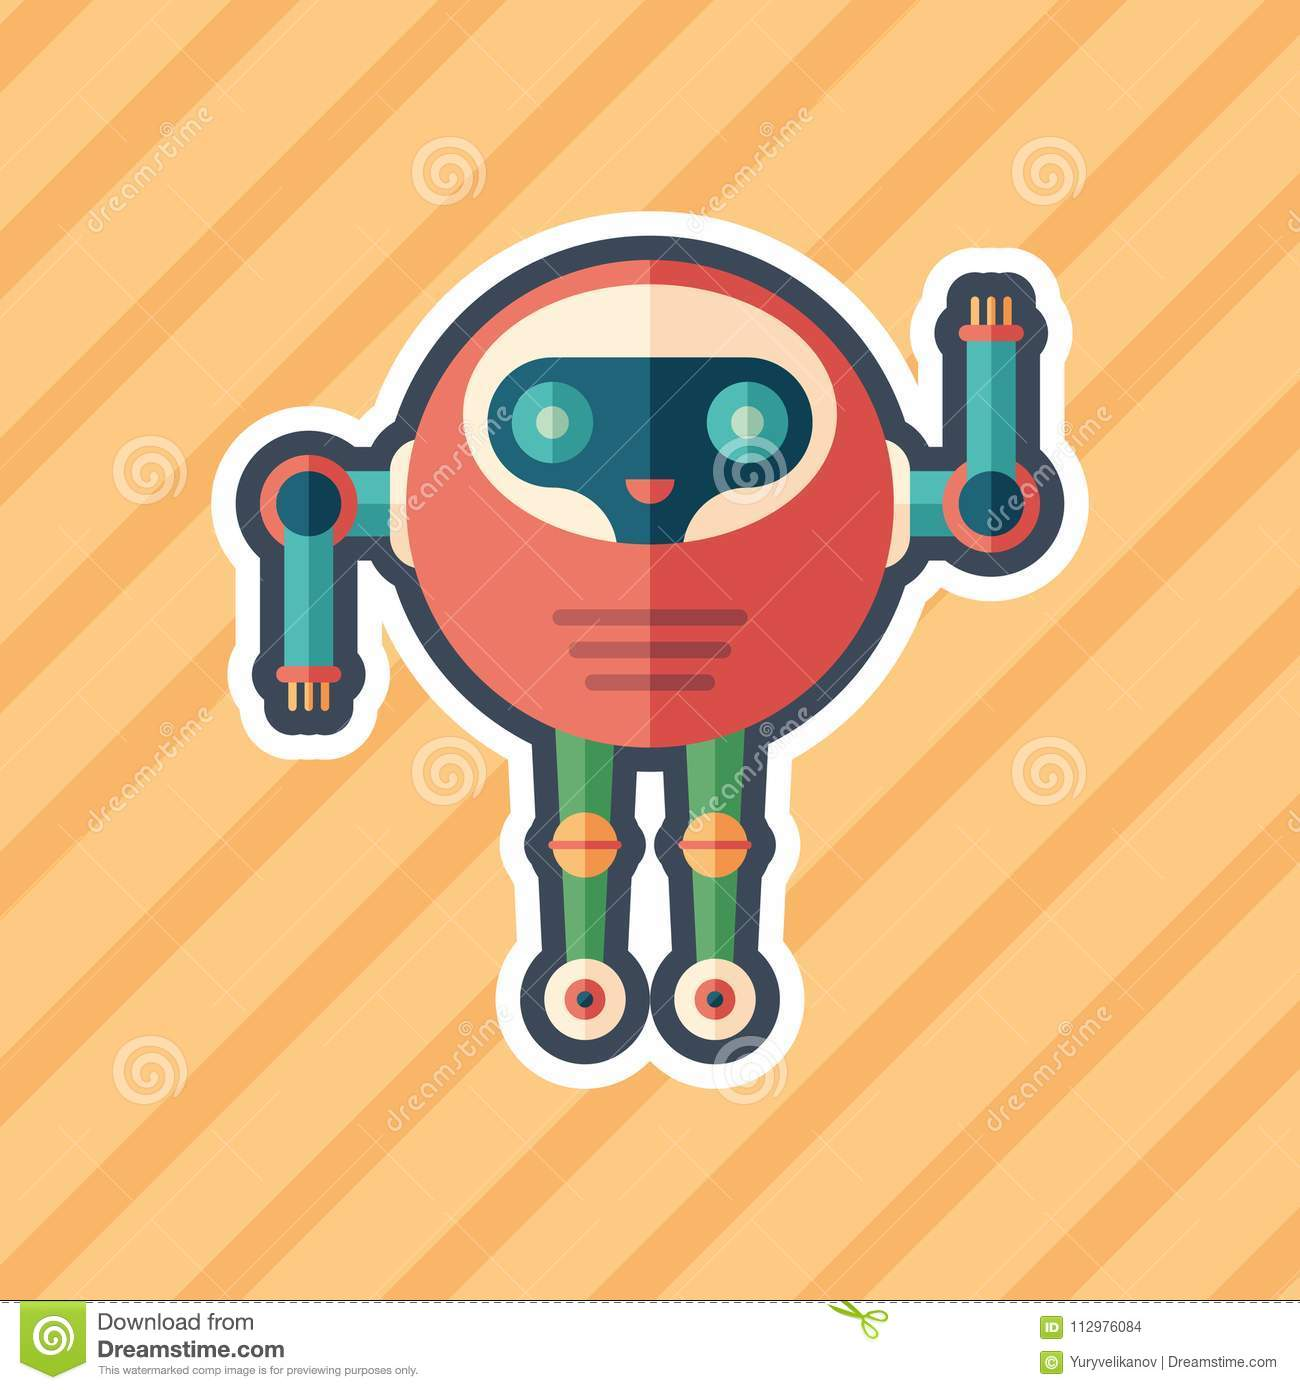 Robot astronaut sticker flat icon with color background.